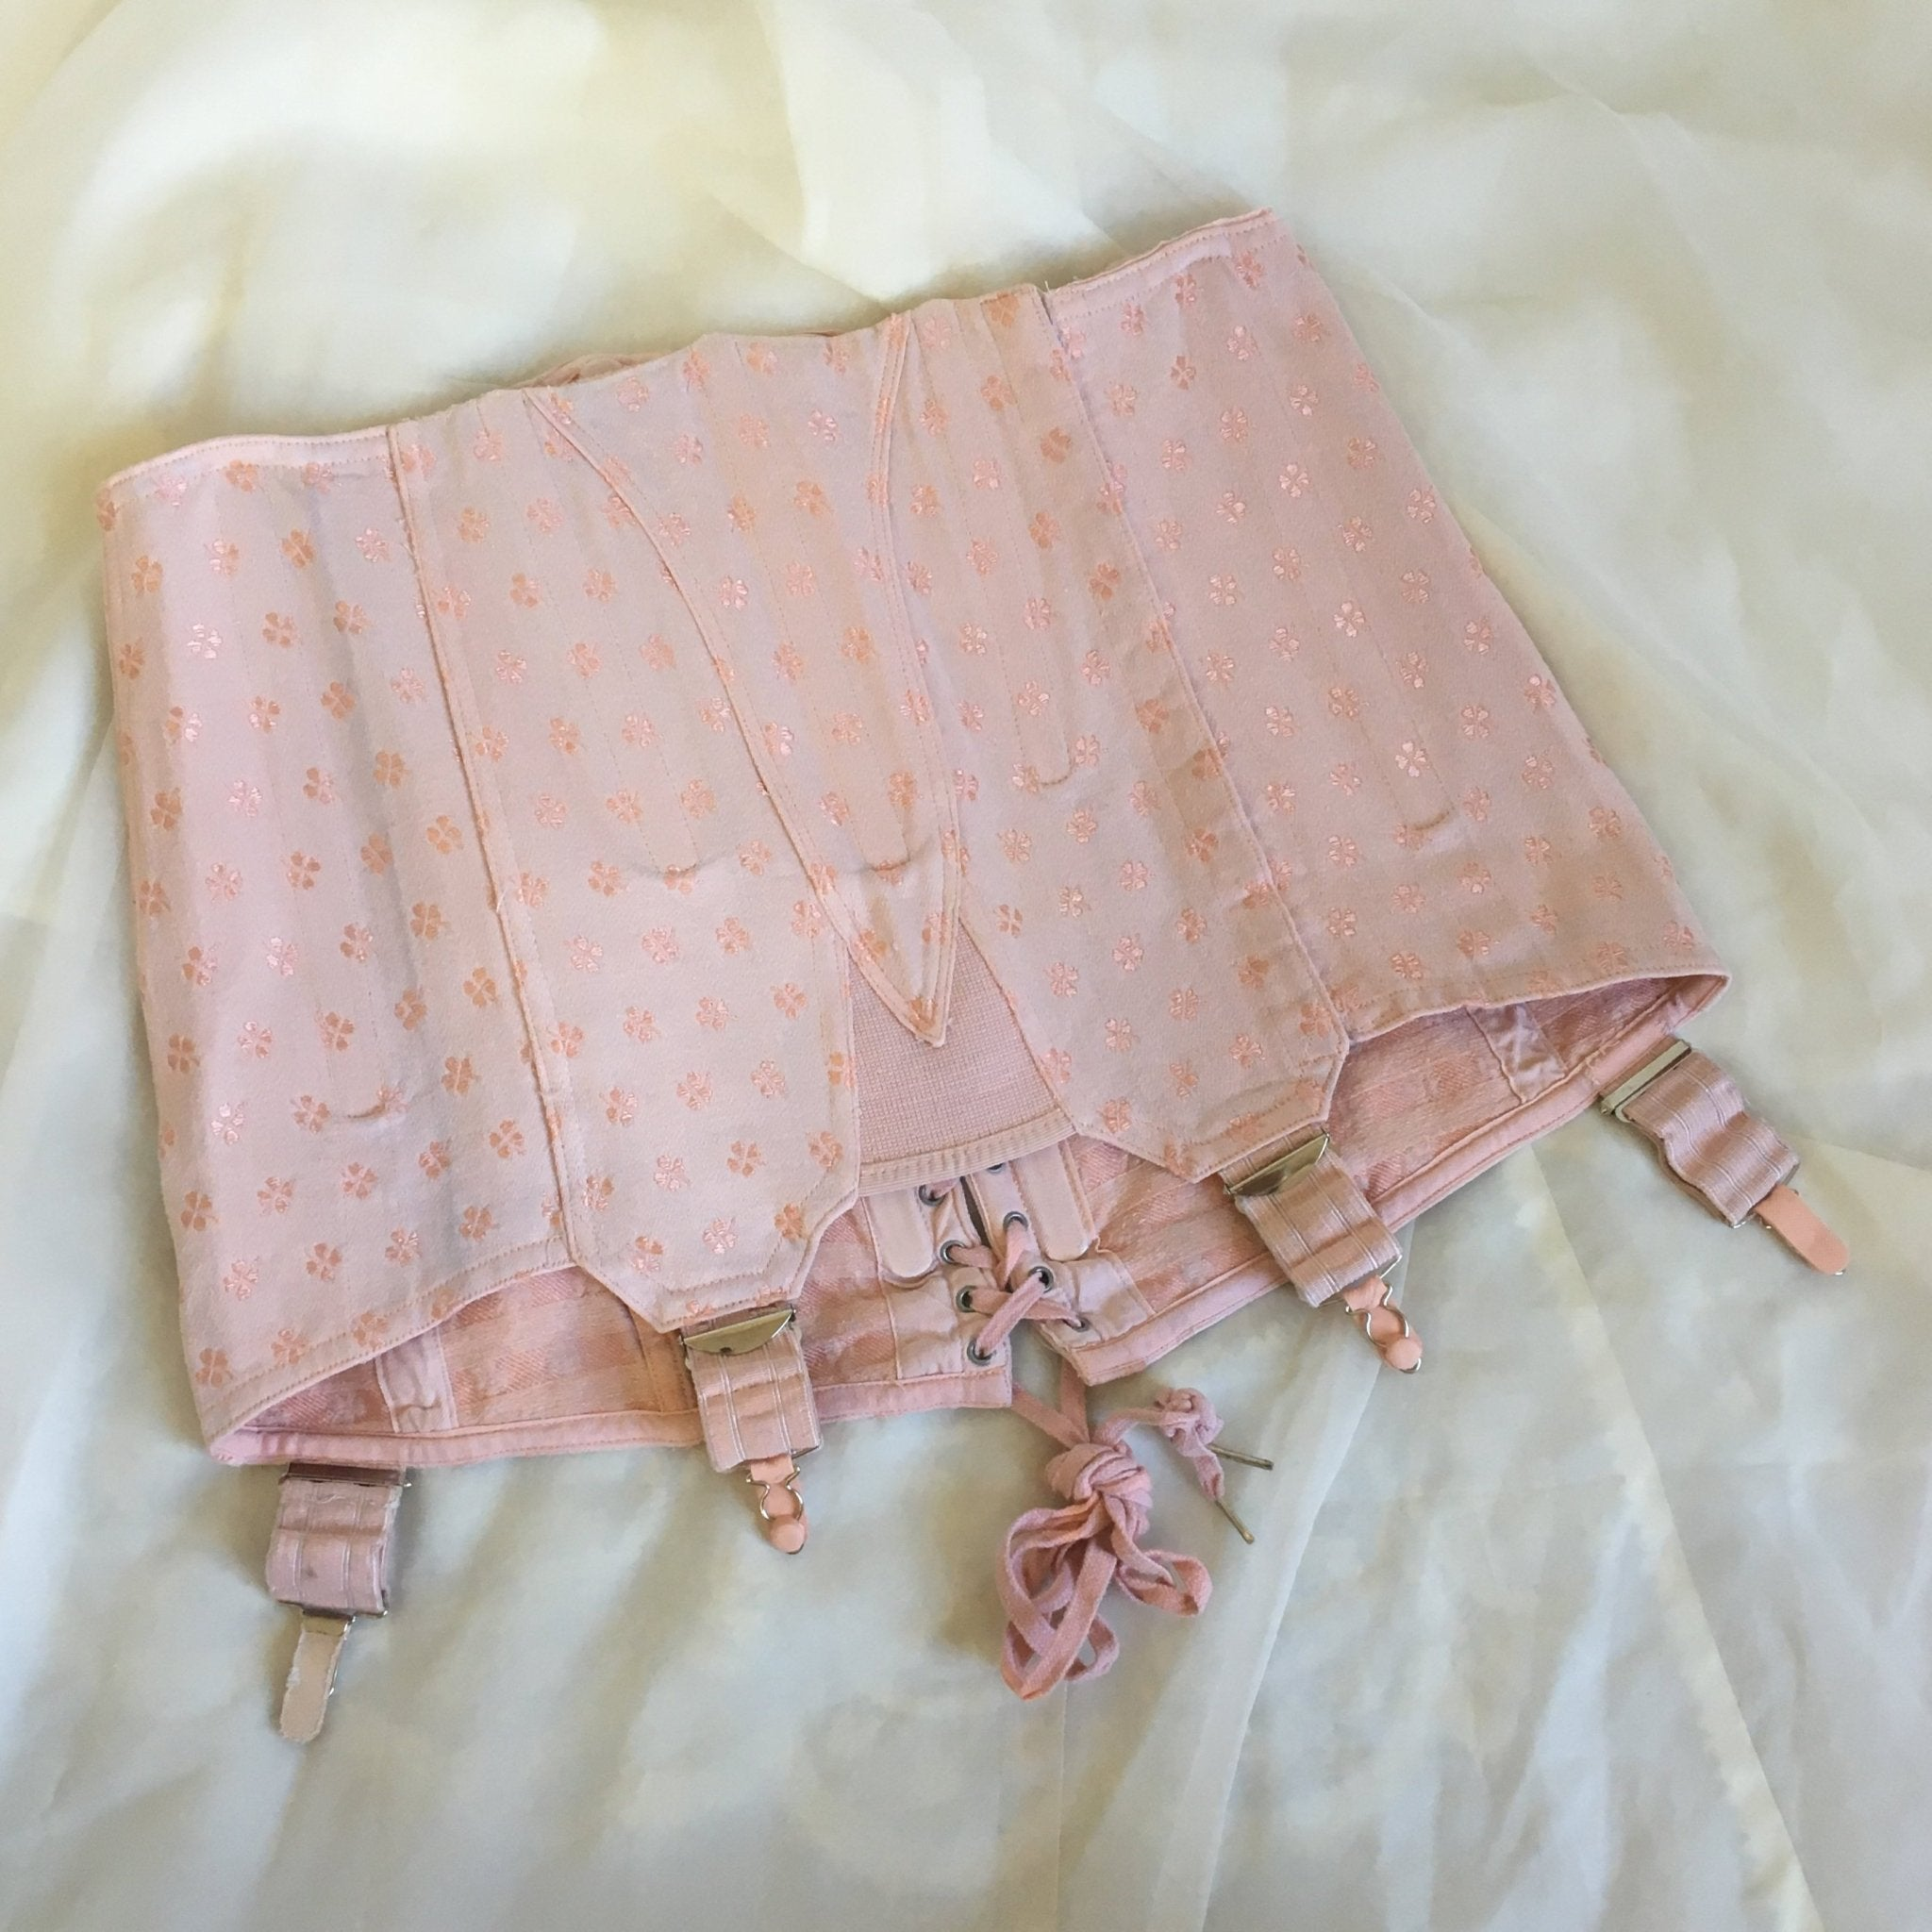 Vintage 1950's Girdle | Light Pink Cotton with Clover Satin Brocade | Brigette, Made in France | Size M, LG - Daggers & Dames